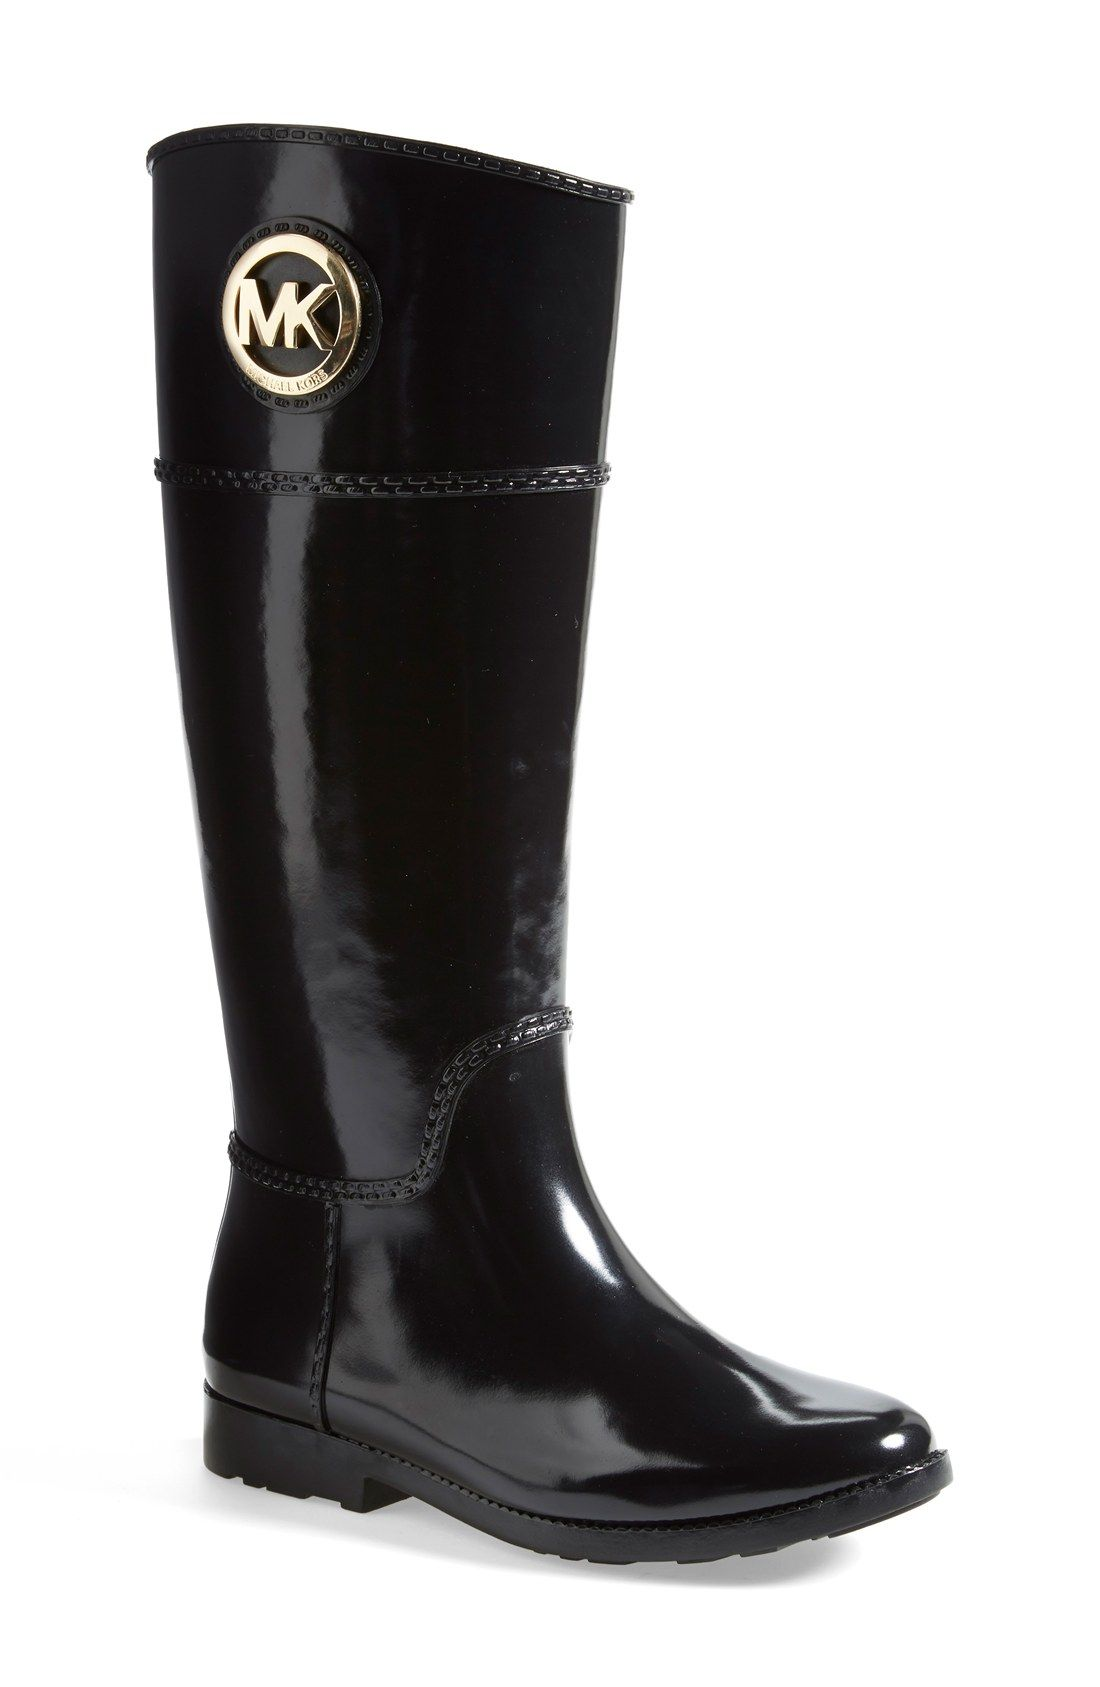 459d155f40f Rain boots with style